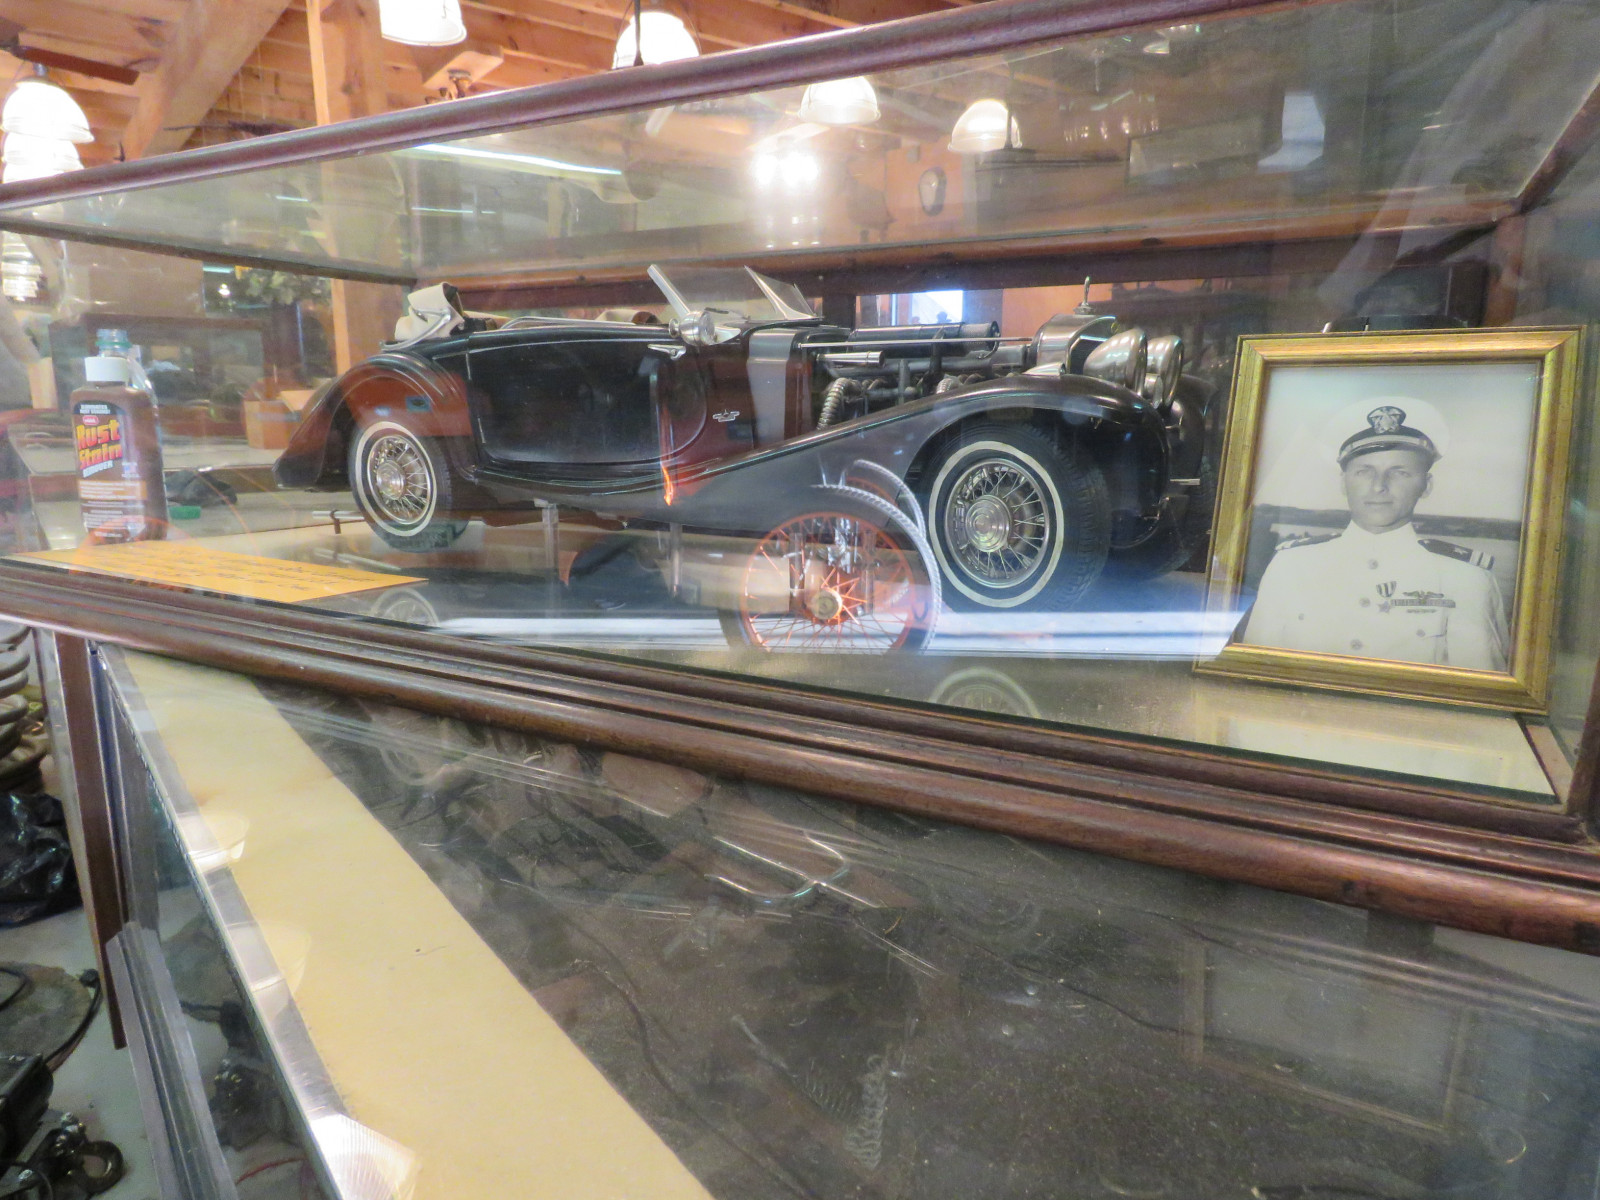 Mercedes Benz Cabriolet Model 540 Model in glass case - Image 1